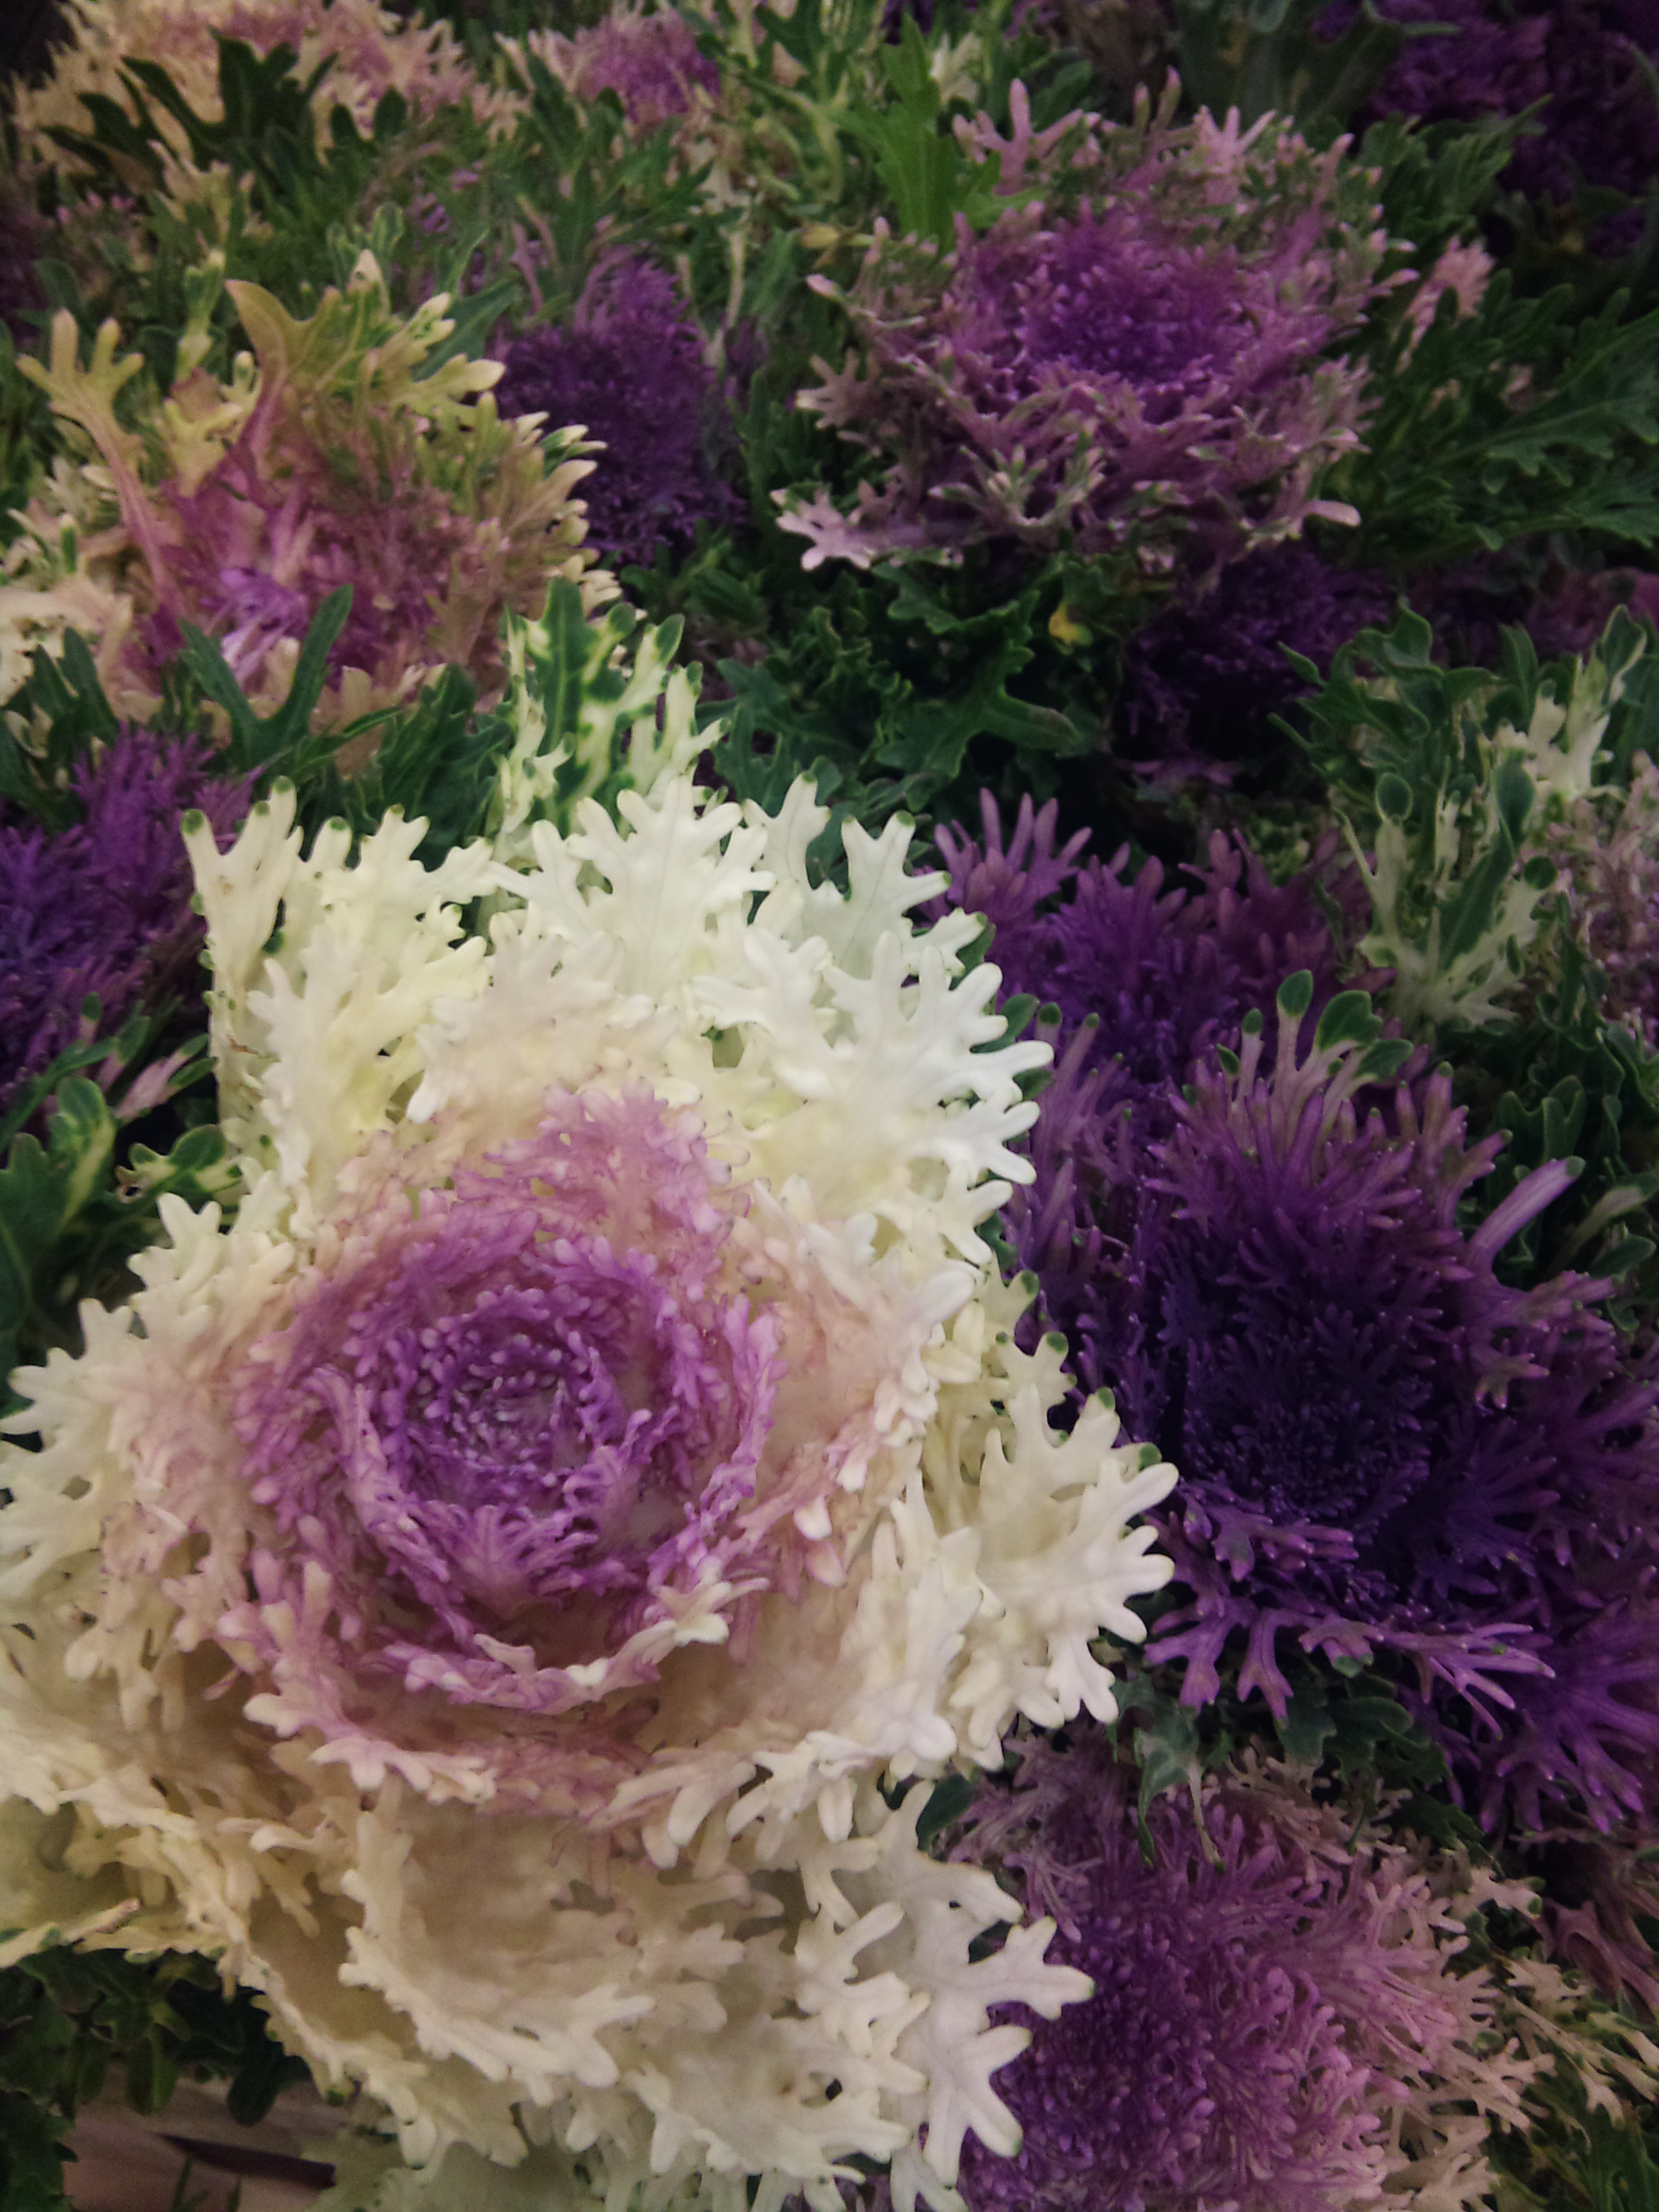 2012-11-lacy-cabbage.jpg?mtime=20171003160336#asset:12693